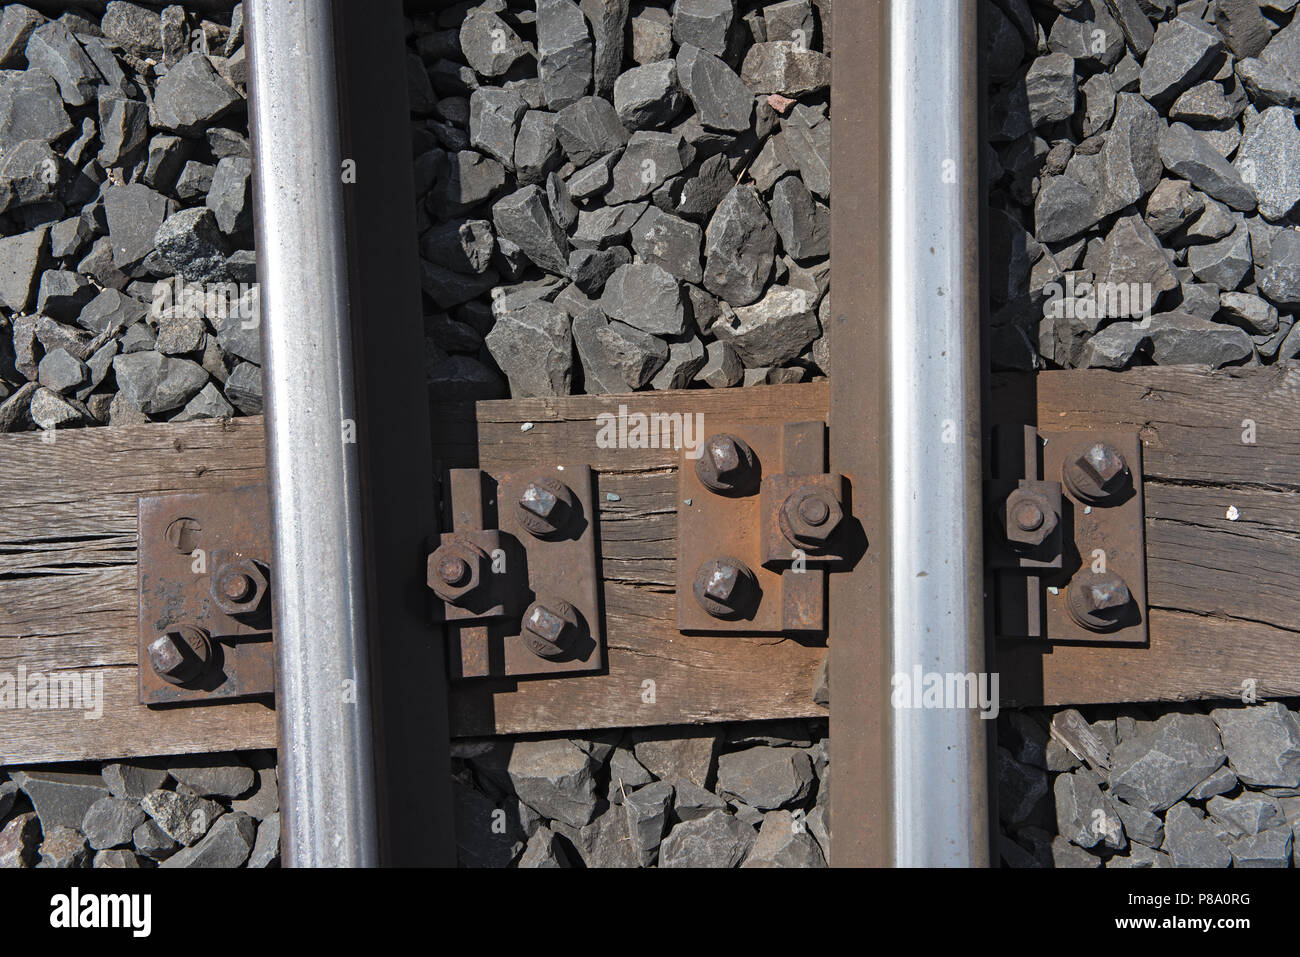 Rails on the wooden sleepers with basalt stone as a substructure. - Stock Image